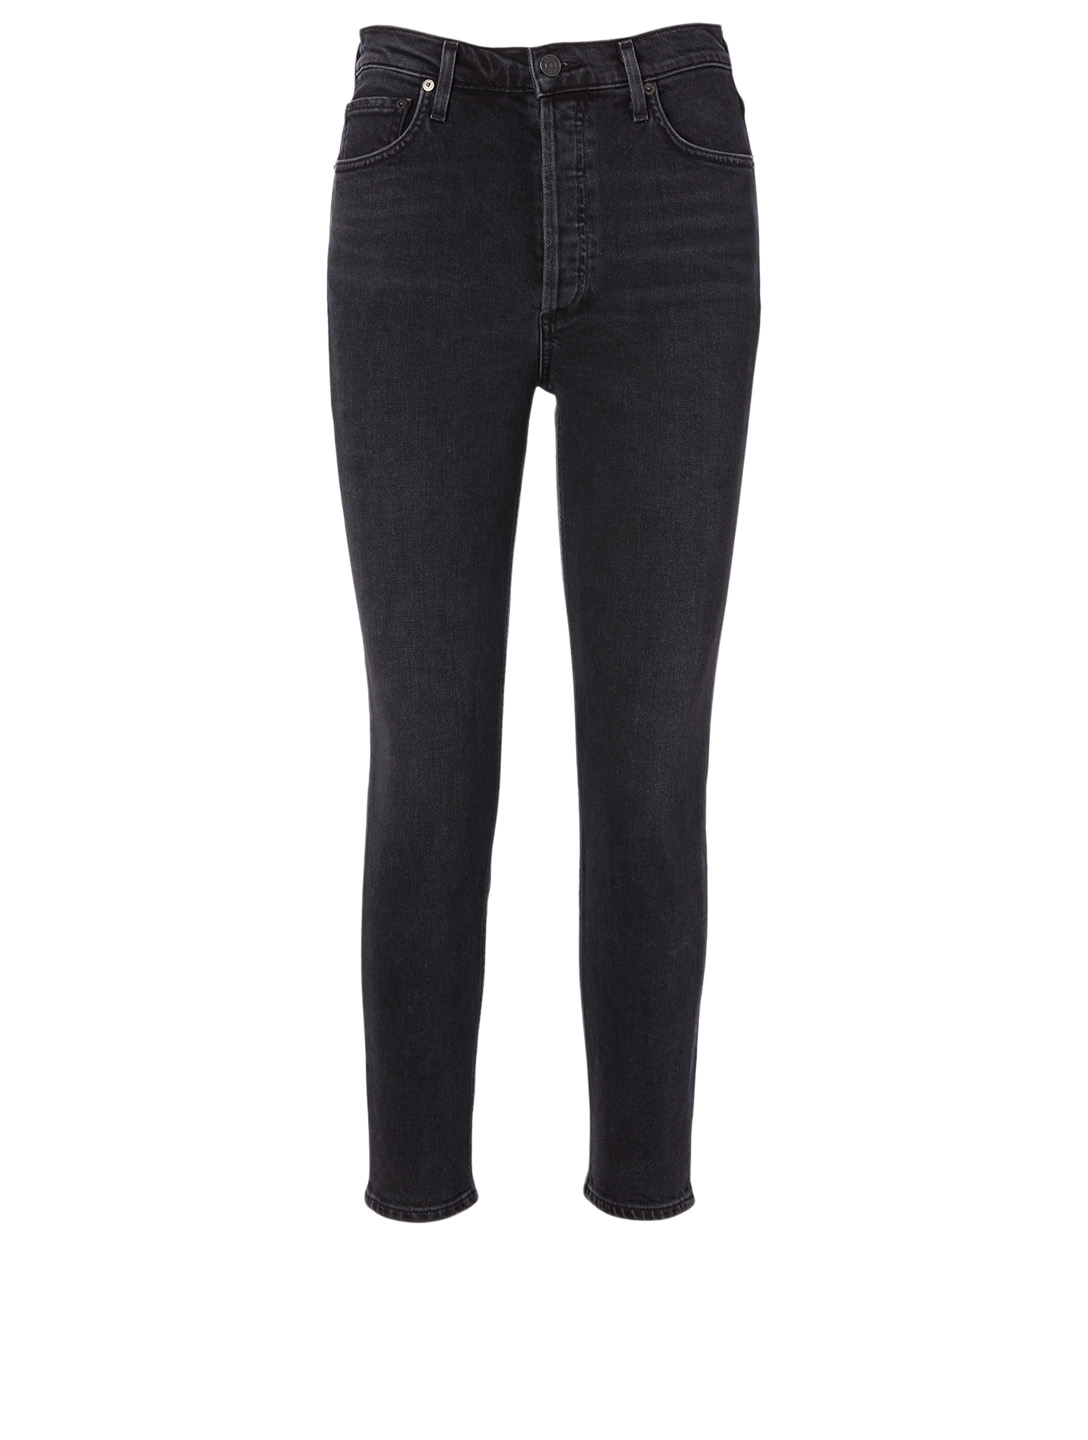 AGOLDE Nico Slim High-Waisted Jeans Women's Grey